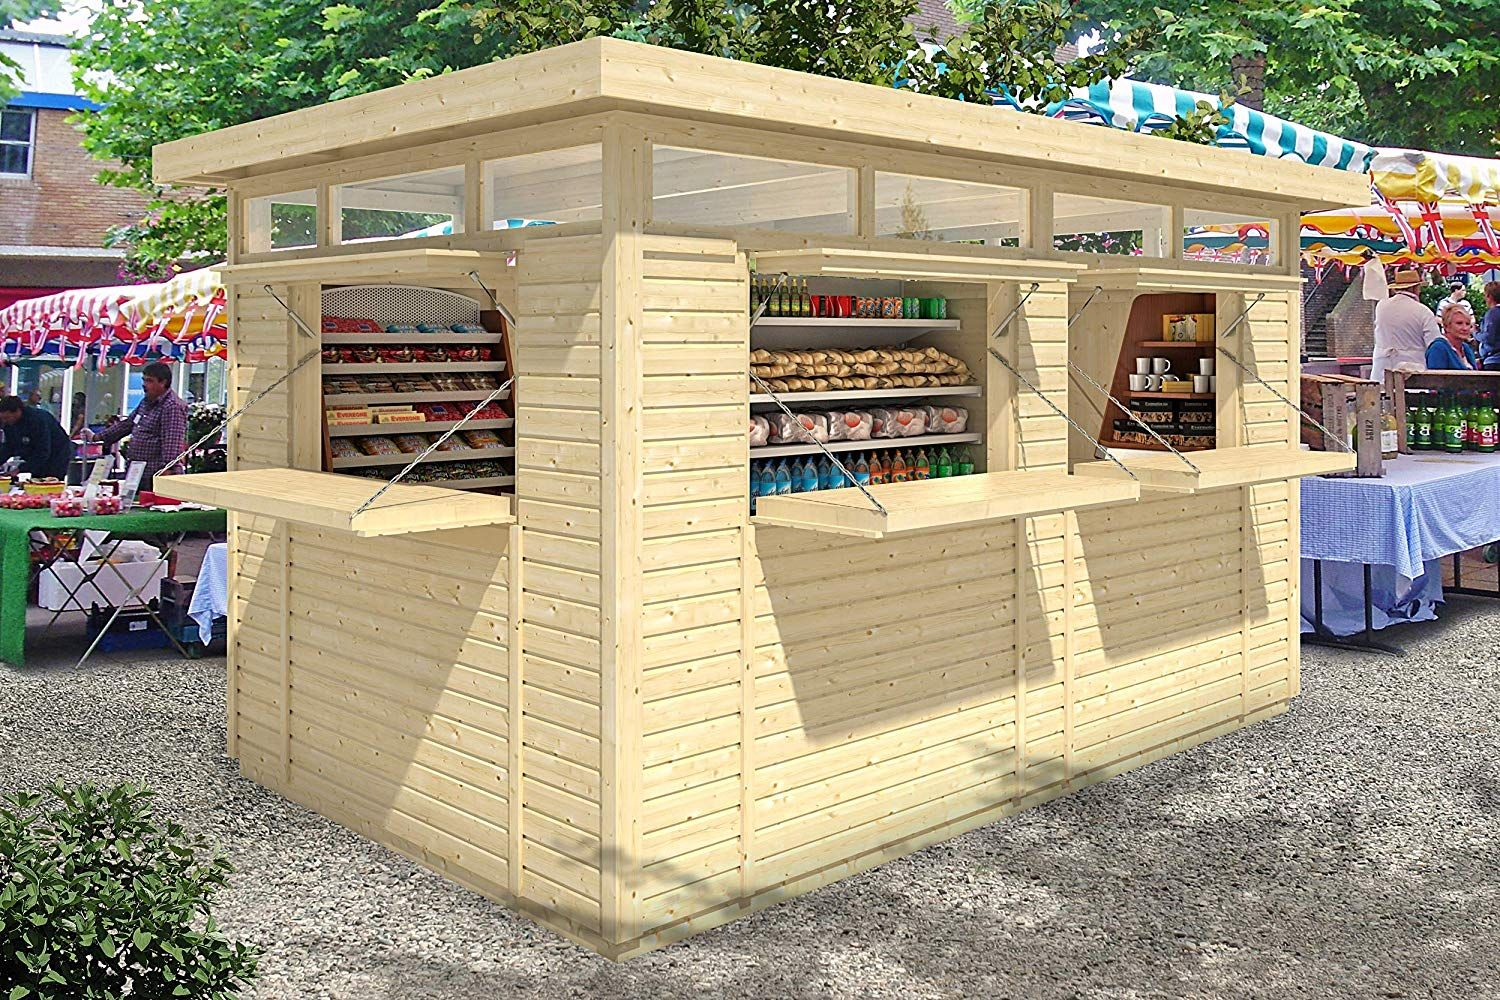 Amazon Is Selling a DIY Prefab Kiosk That Would Make the Best Backyard Bar